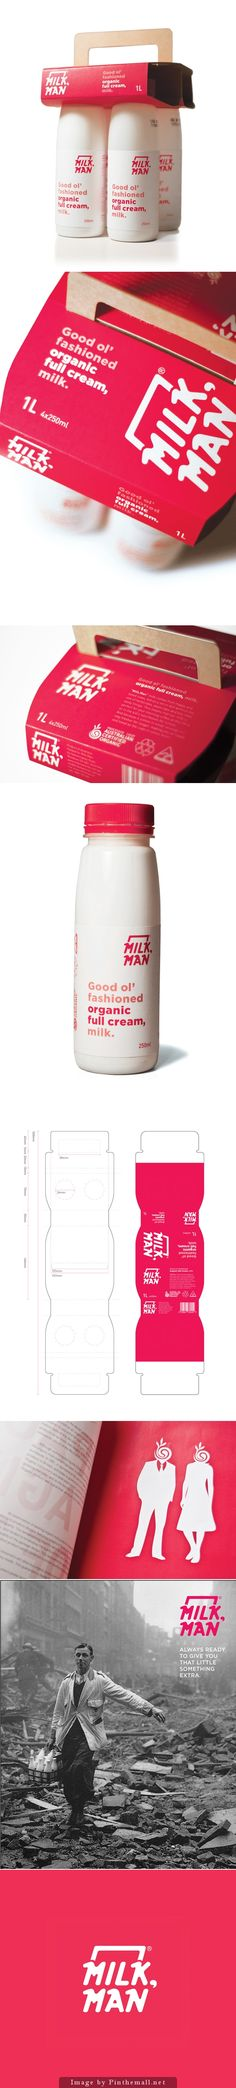 Wow, that's some MilkMan #packaging curated by Packaging Diva PD created via https://www.behance.net/gallery/MILKMAN-Packaging/1753600